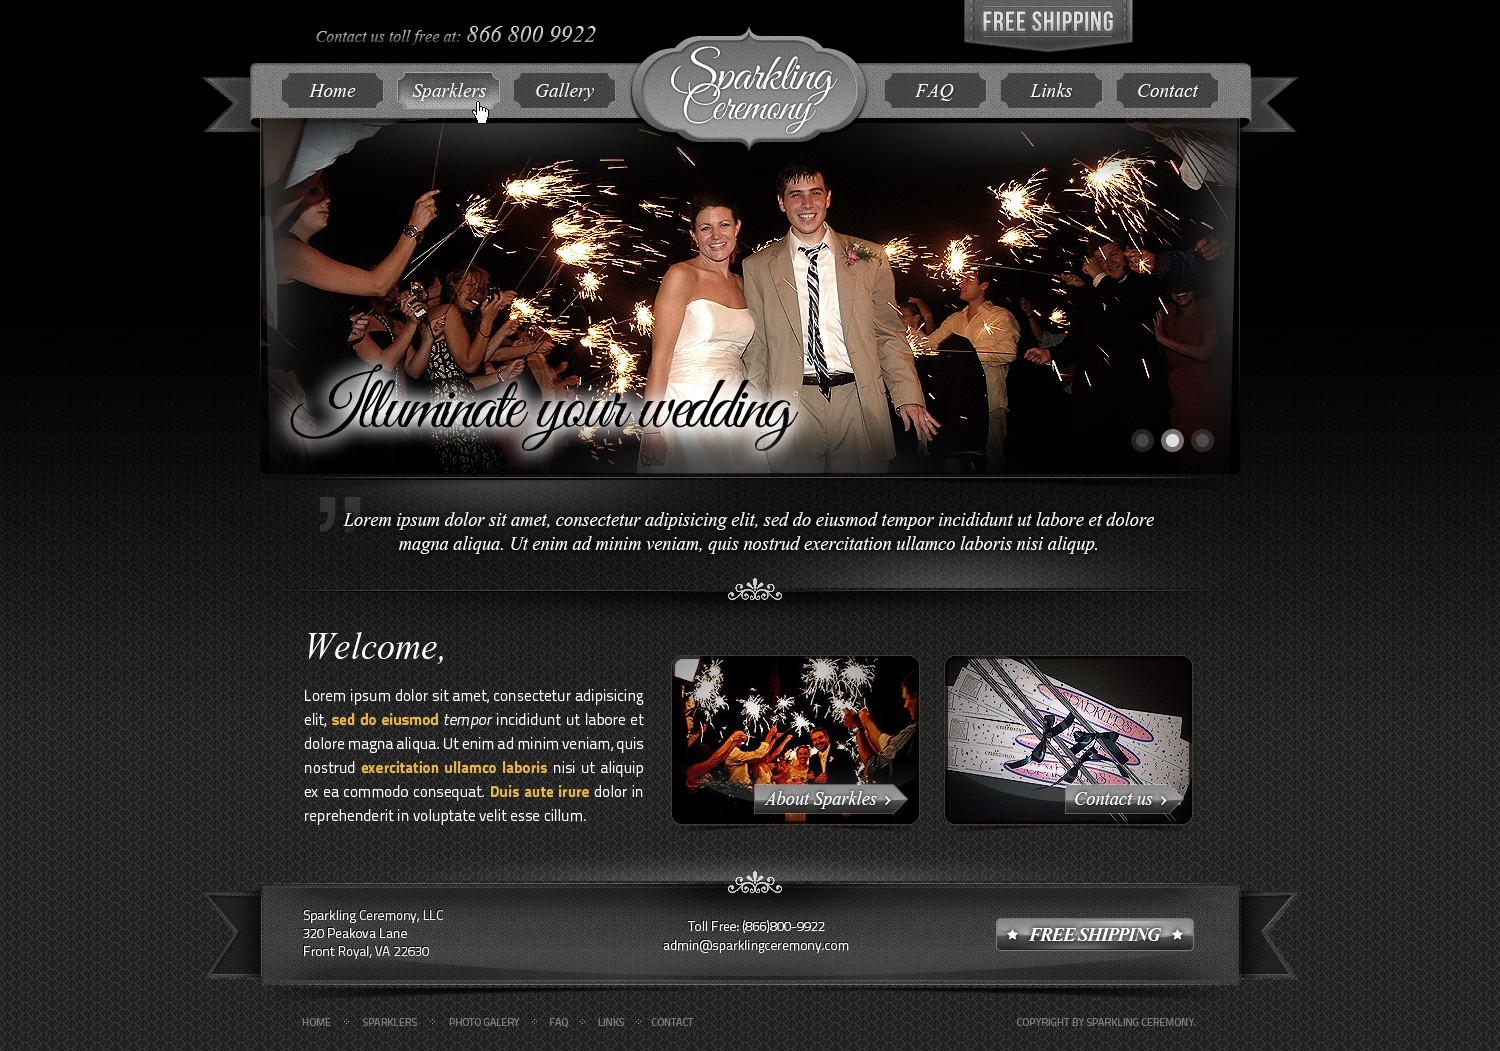 New website design wanted for Sparkling Ceremony, LLC